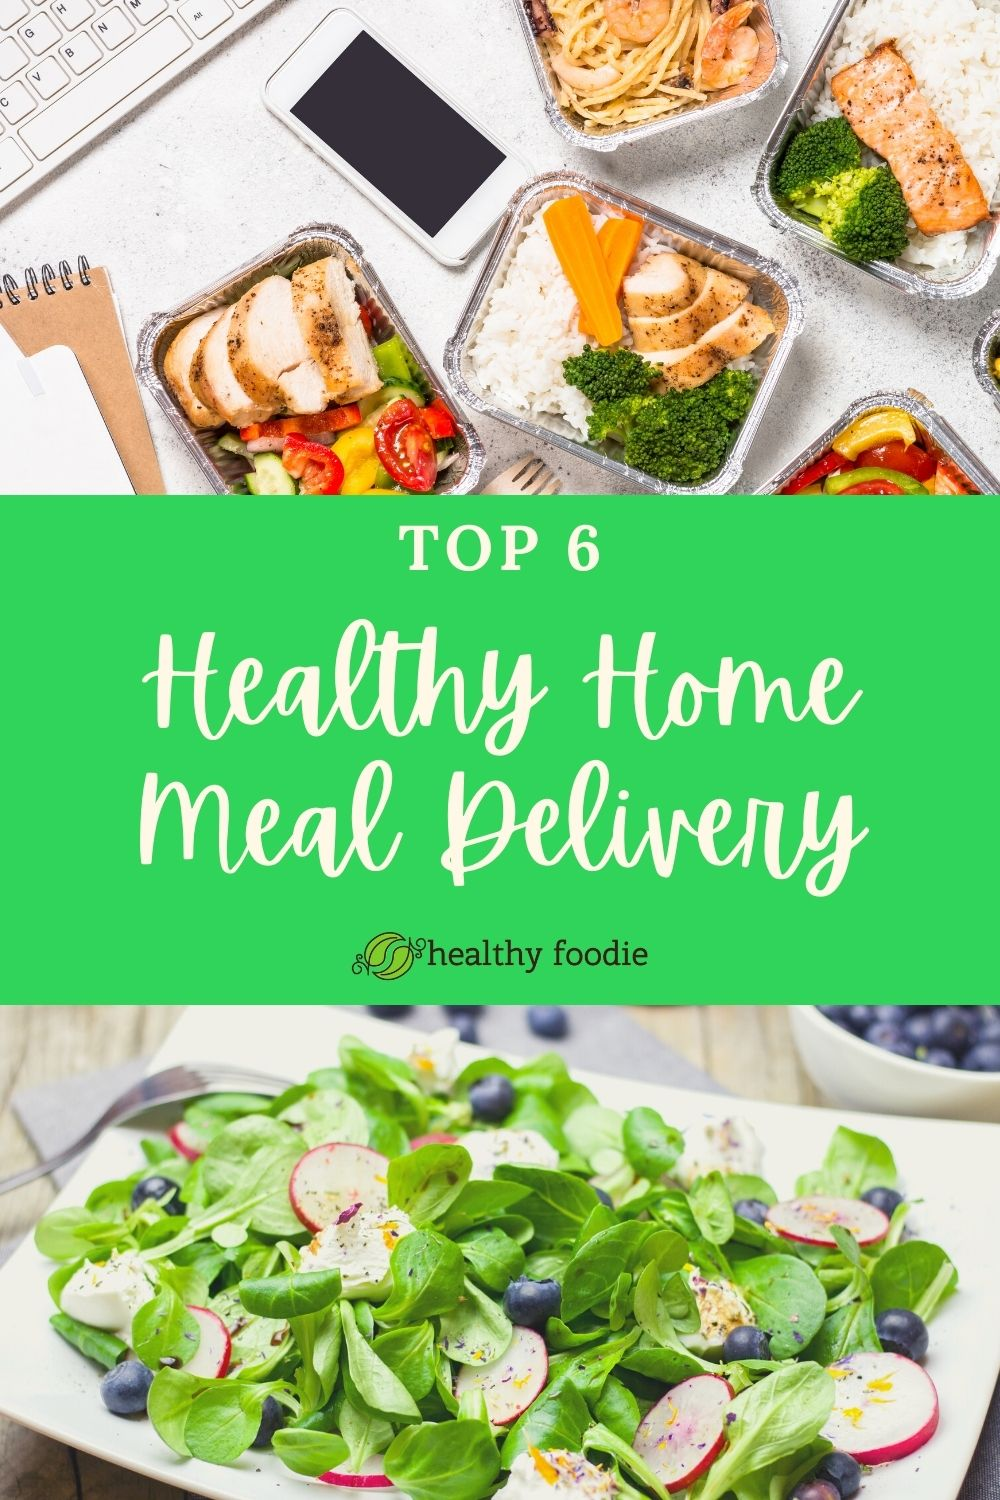 Healthy Home Meal Delivery